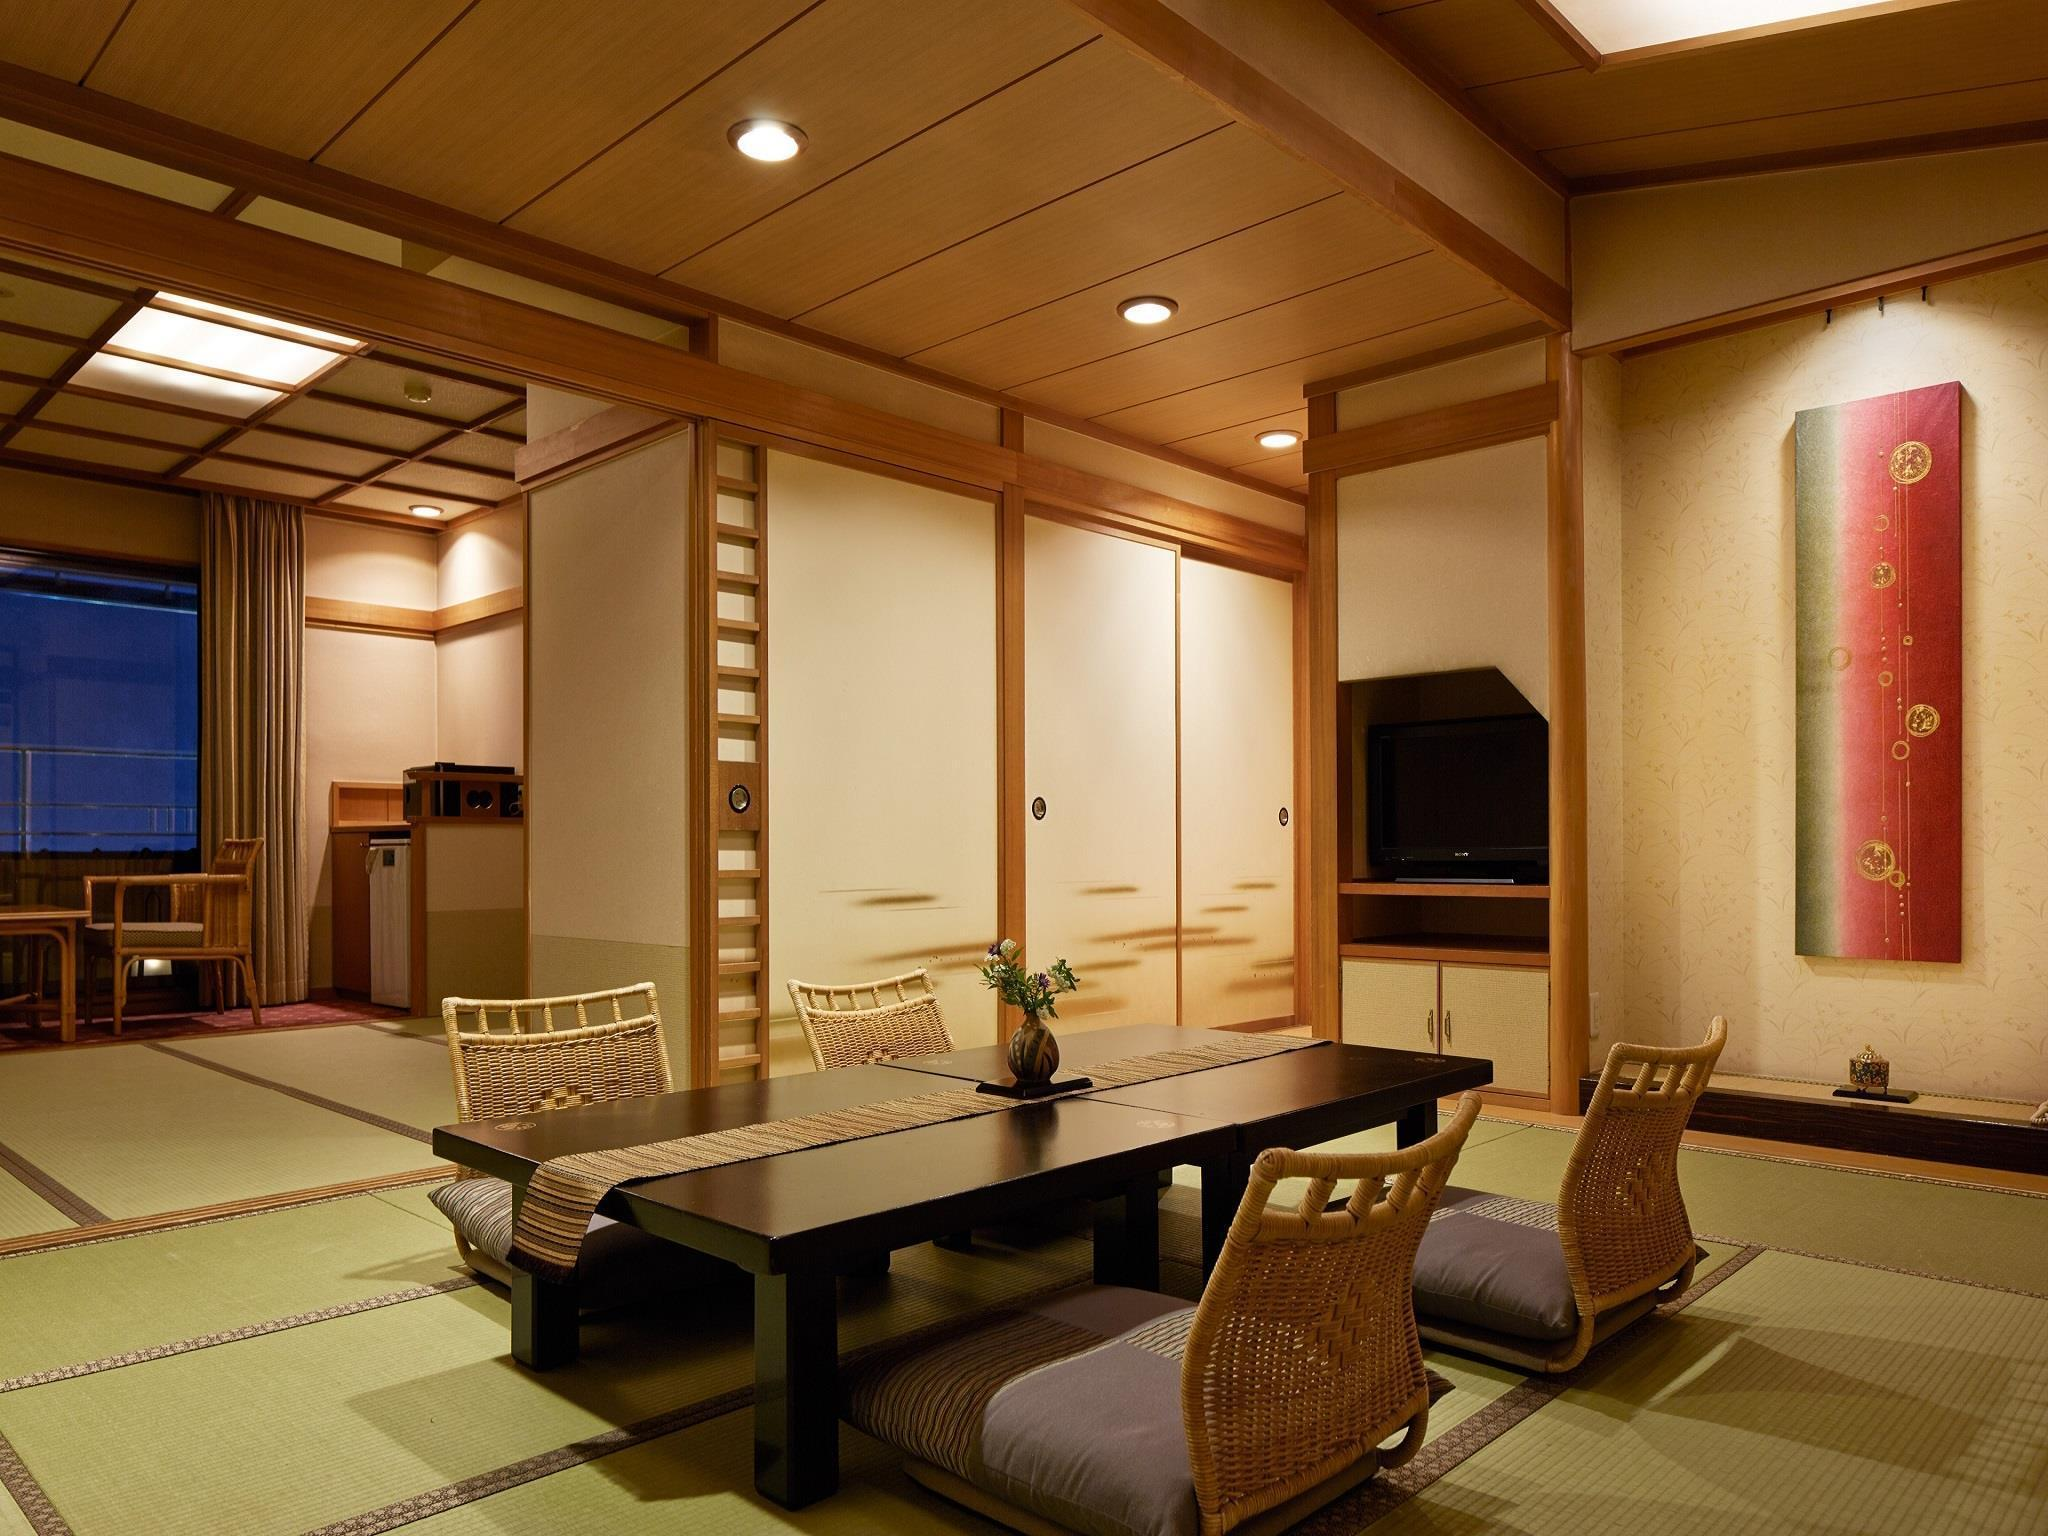 湖景豪華日式客房 - 有露天浴池 (Deluxe Lake View Japanese Style Room with Open-Air Bath)